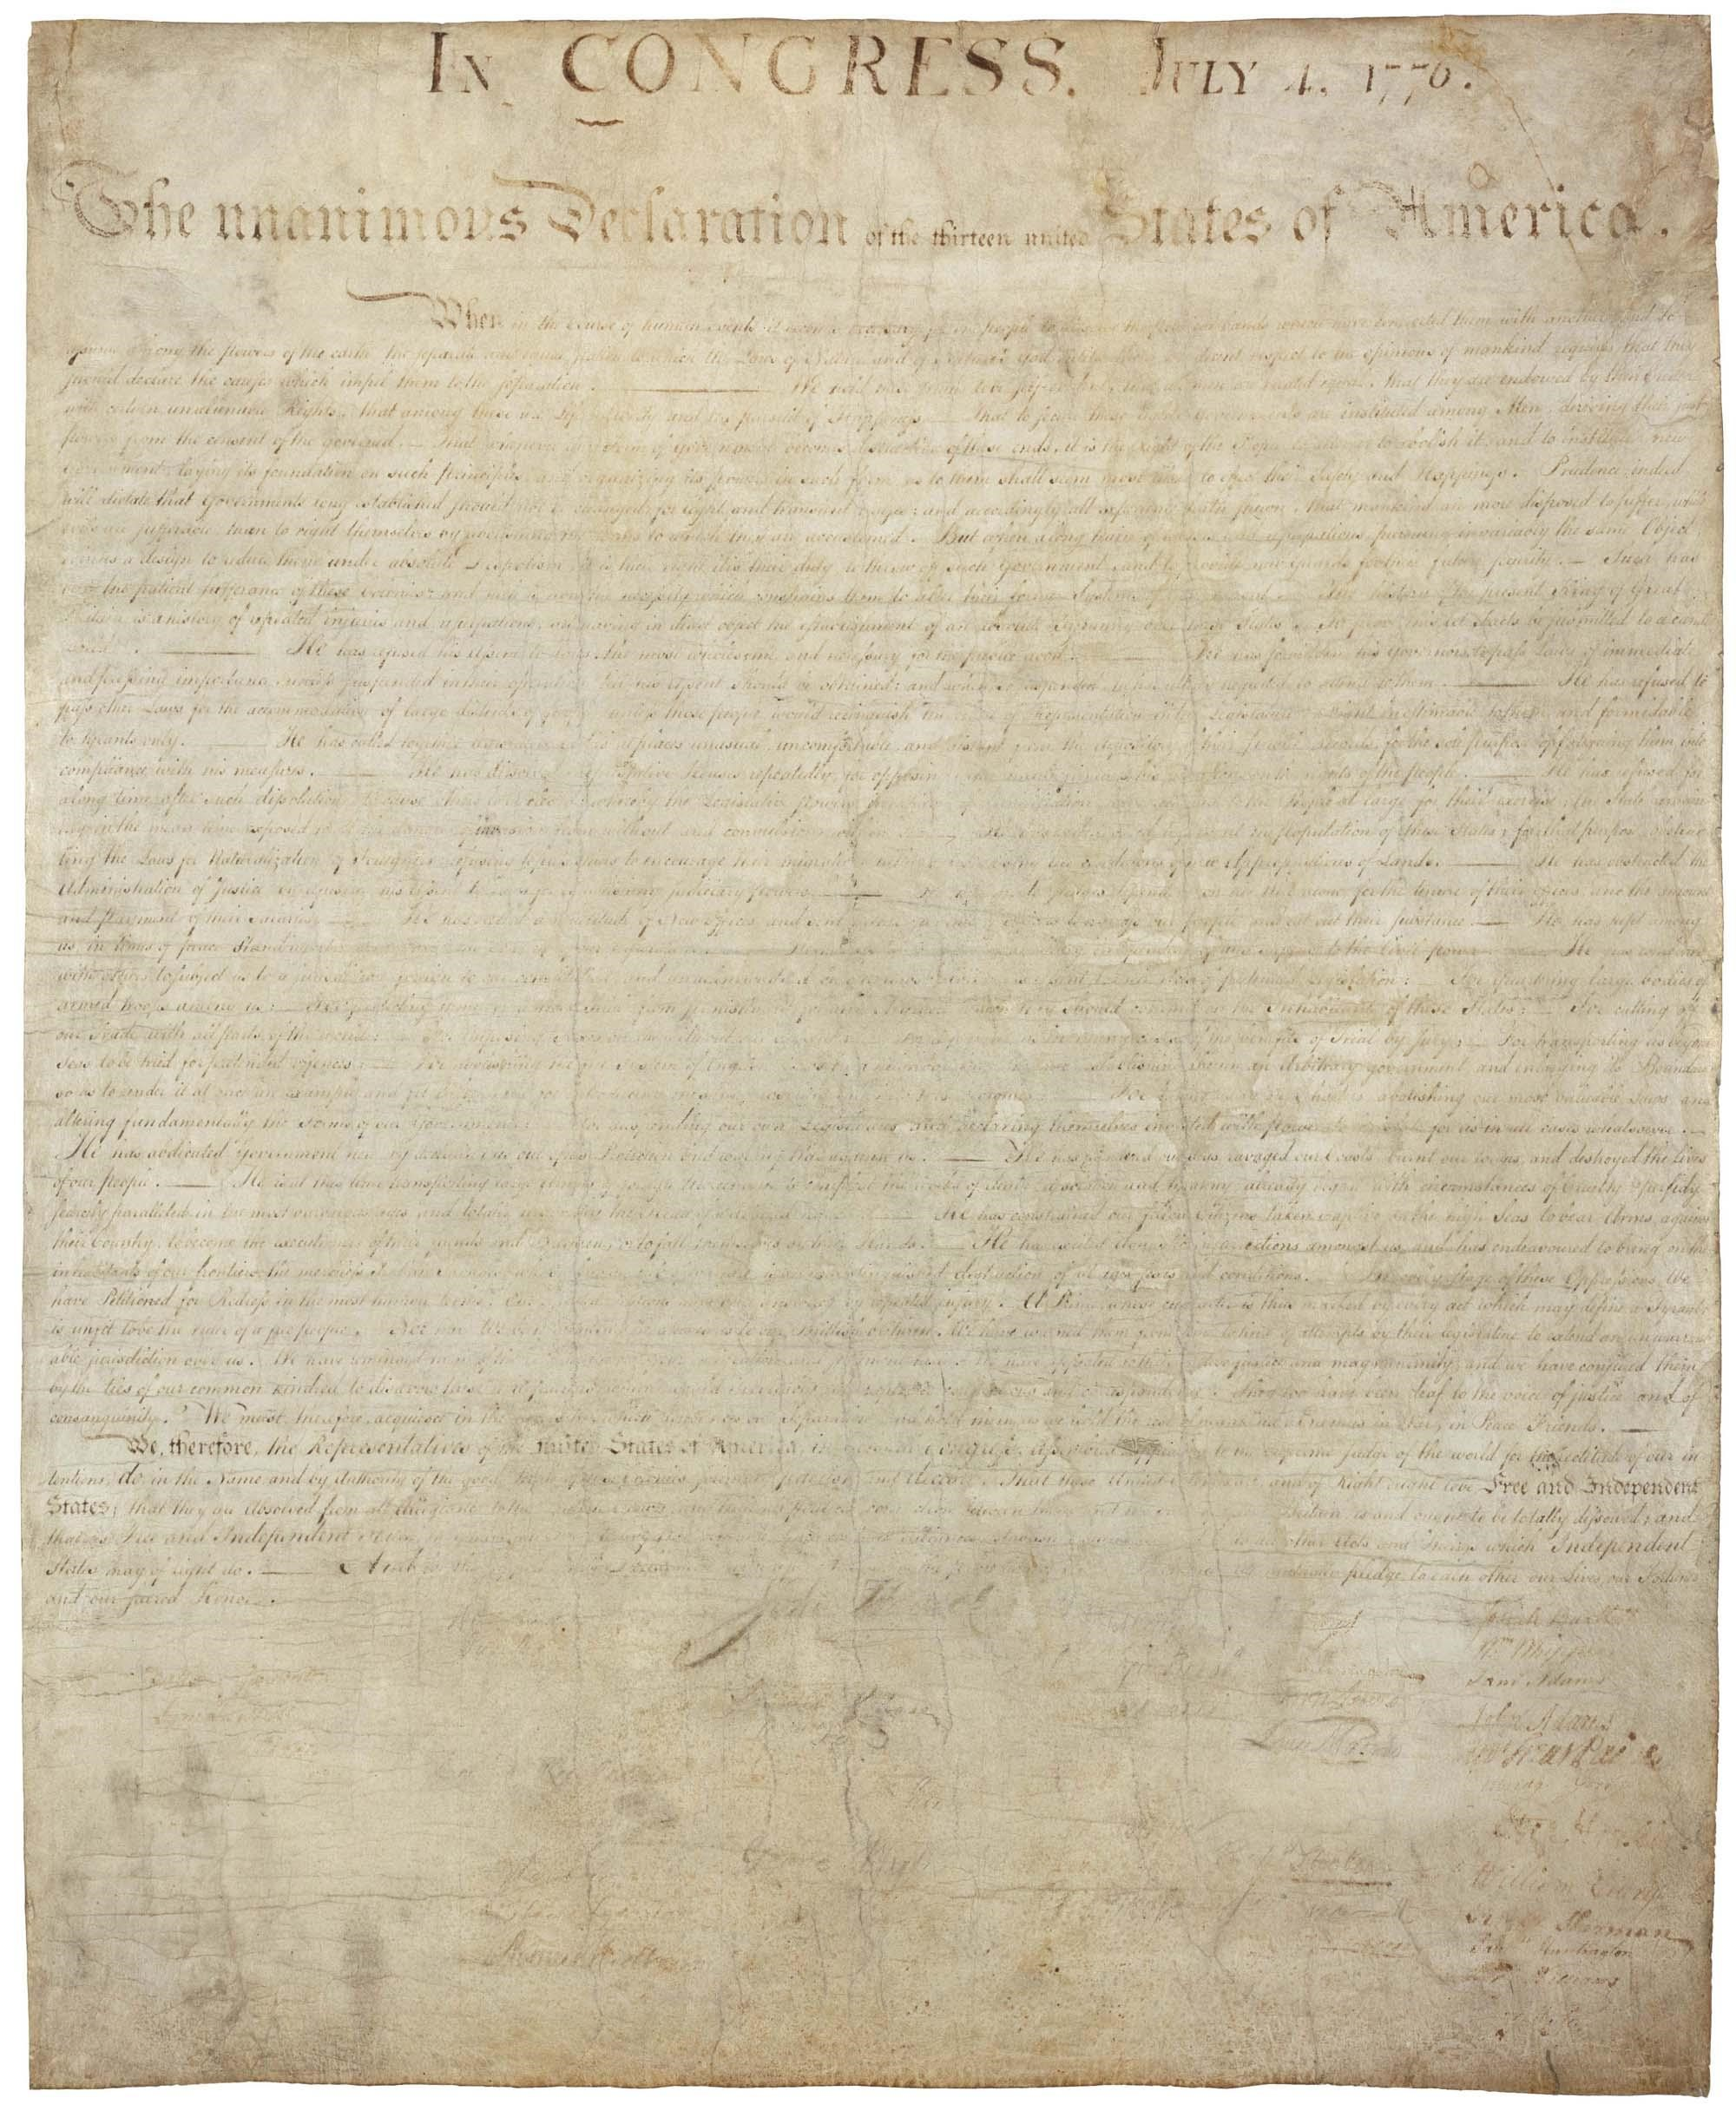 The United States Declaration of Independence, as it appears on display at the National Archives.